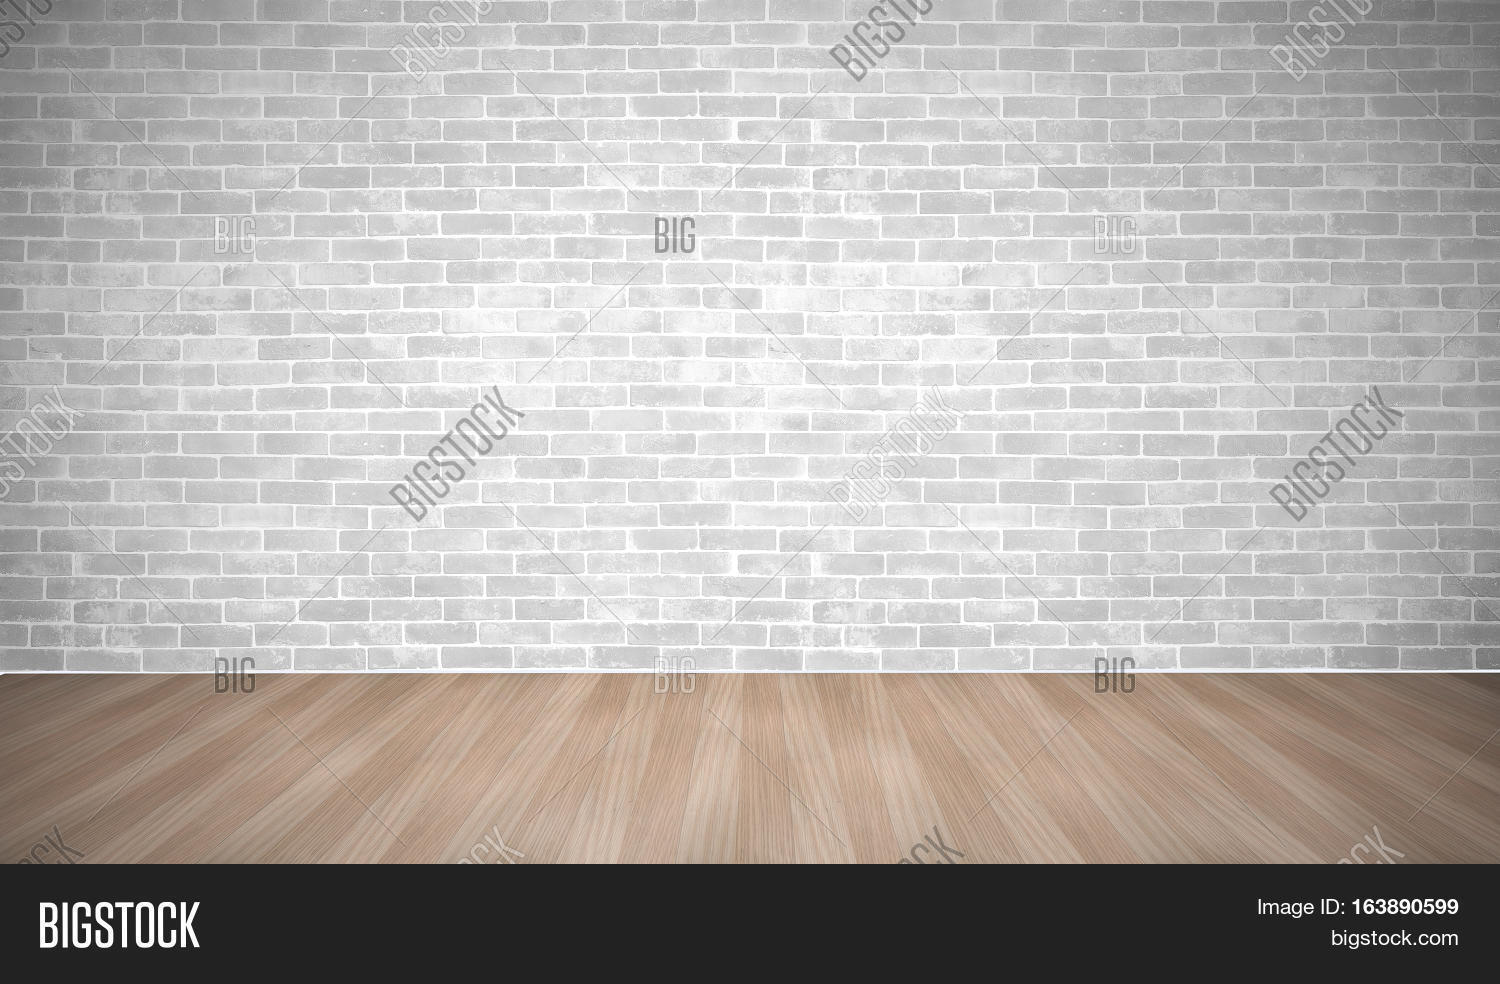 white wood floor texture. Brick wall and plank wood floor texture concept  Modern vintage white brick on brown Wall Plank Wood Floor Texture Image Photo Bigstock